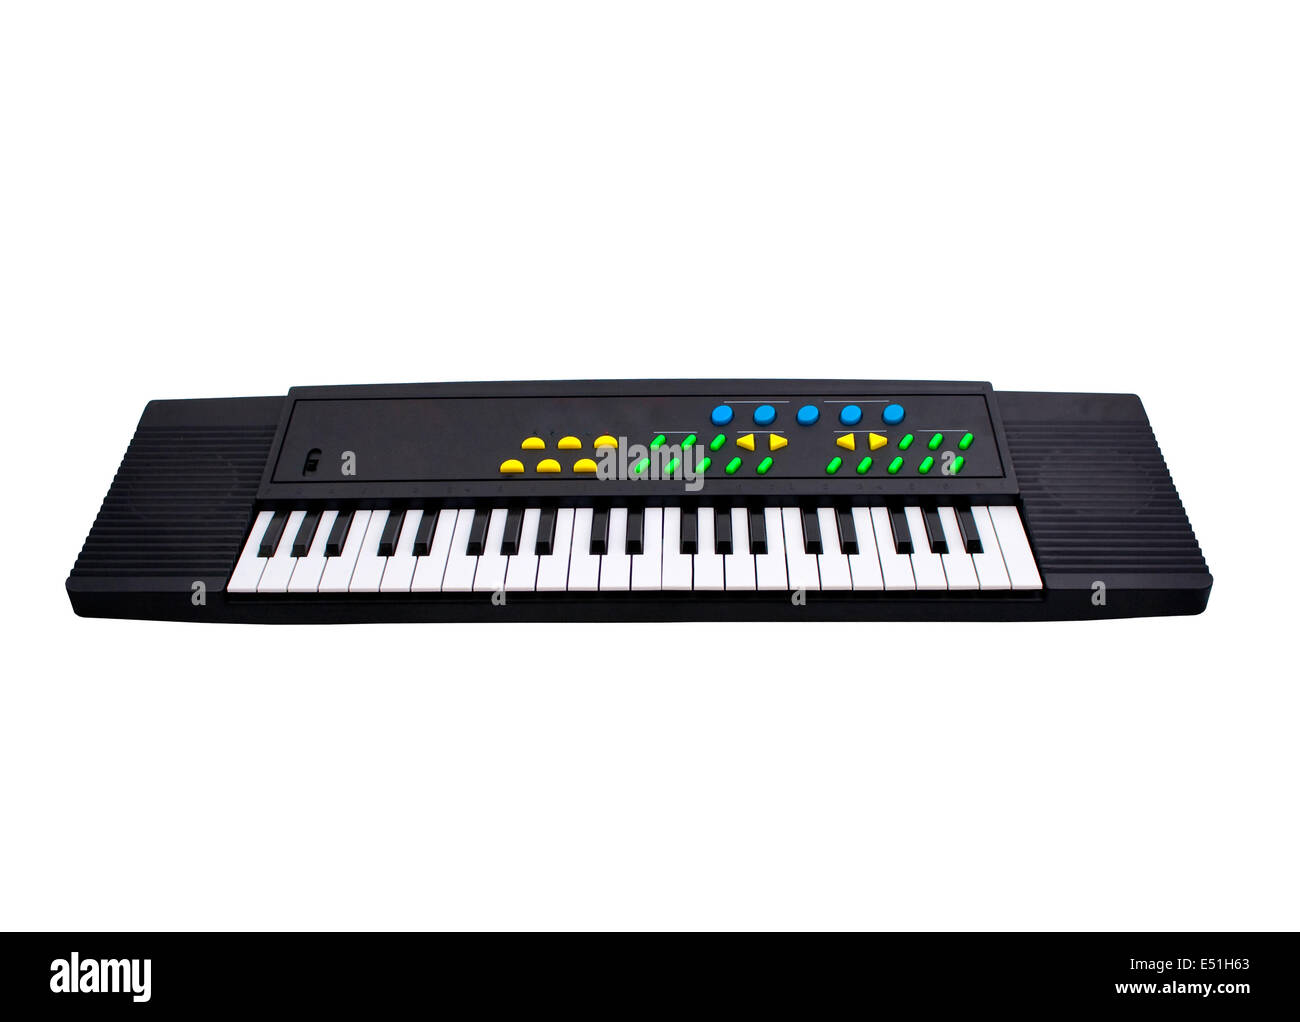 Synthesizer - Stock Image